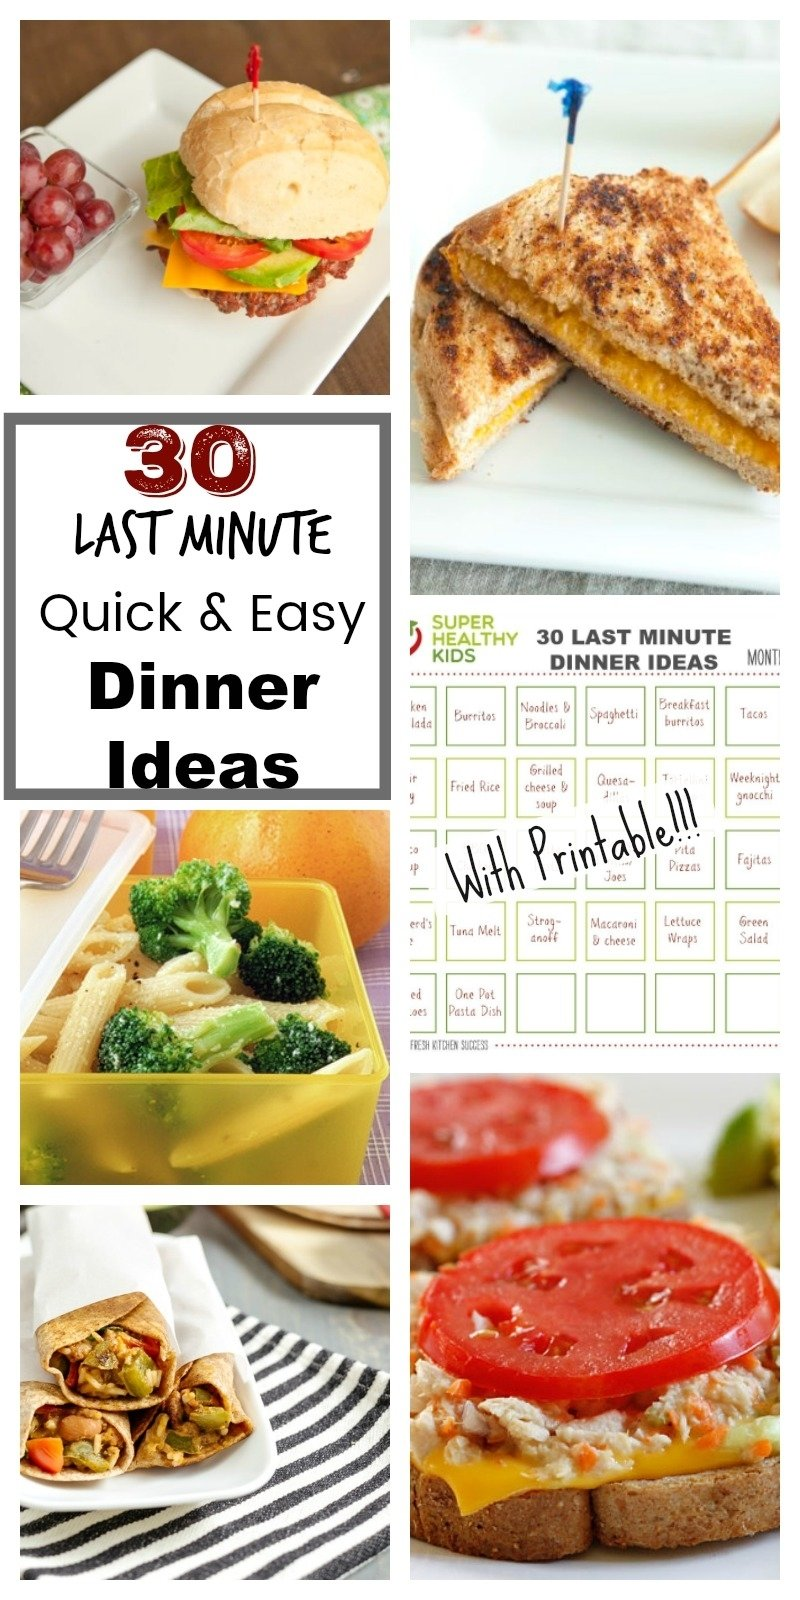 10 Unique Dinner Ideas Quick And Easy 30 quick and easy last minute dinner ideas healthy ideas for kids 2